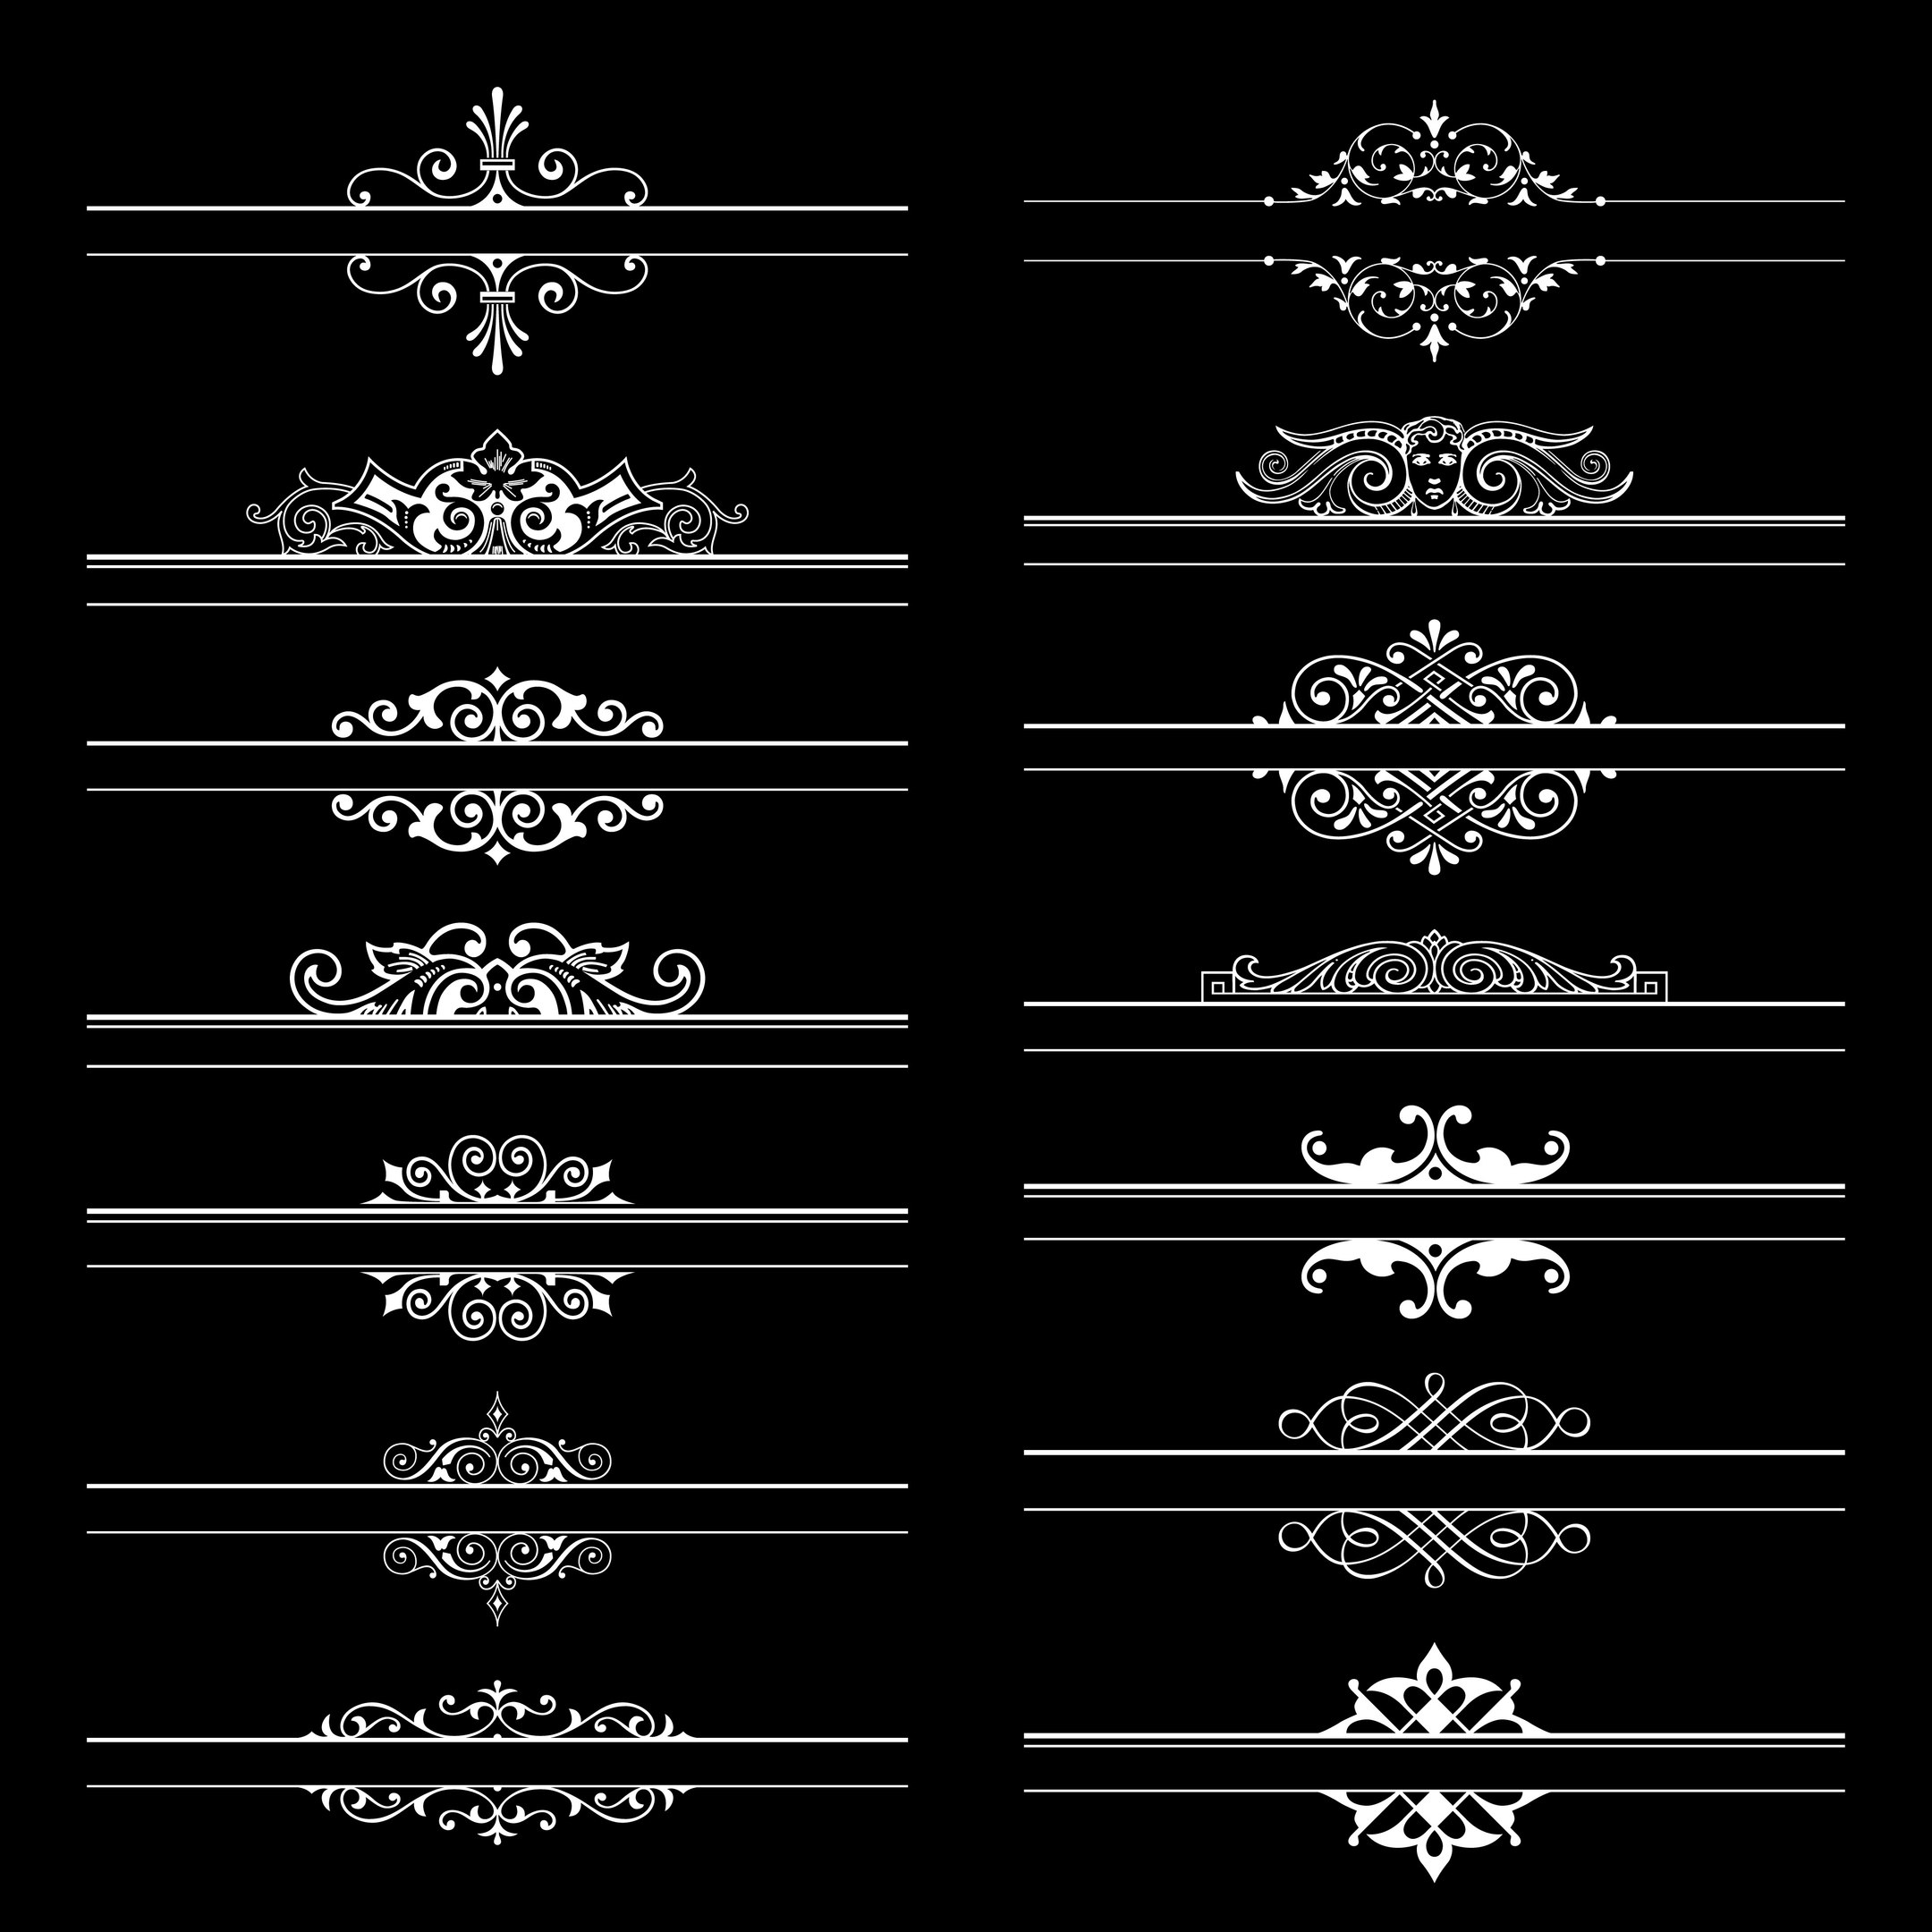 Large Collection Of Ornate Headpieces Free Vector